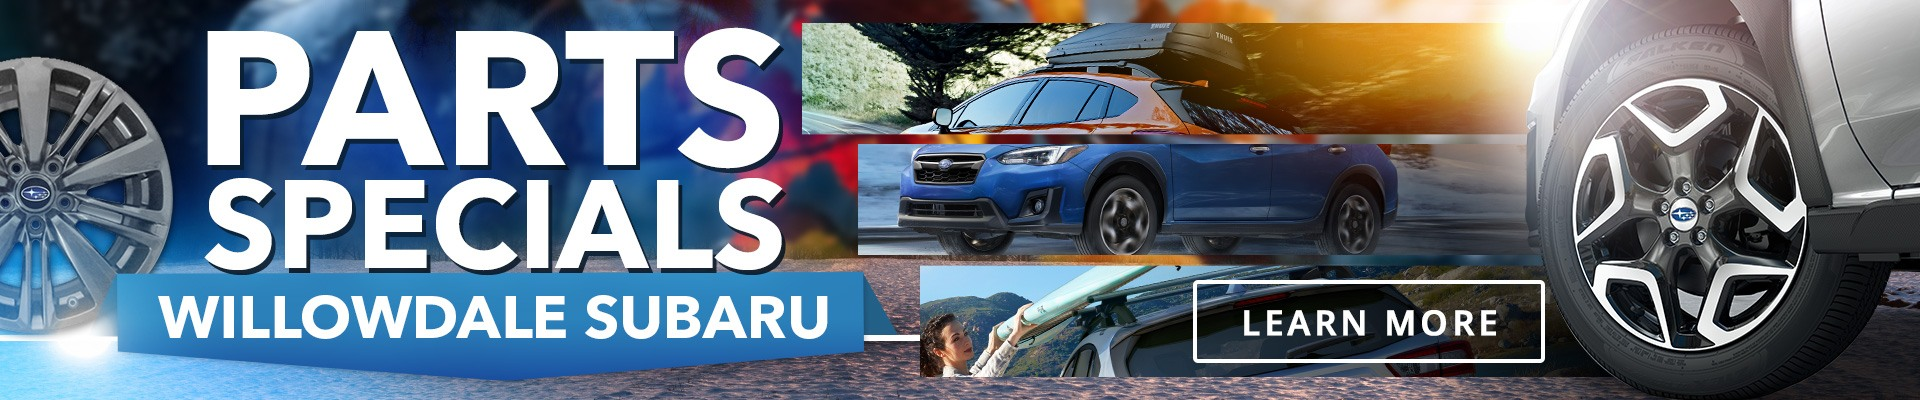 Toronto Parts Offers on Subaru Vehicles from Willowdale Subaru